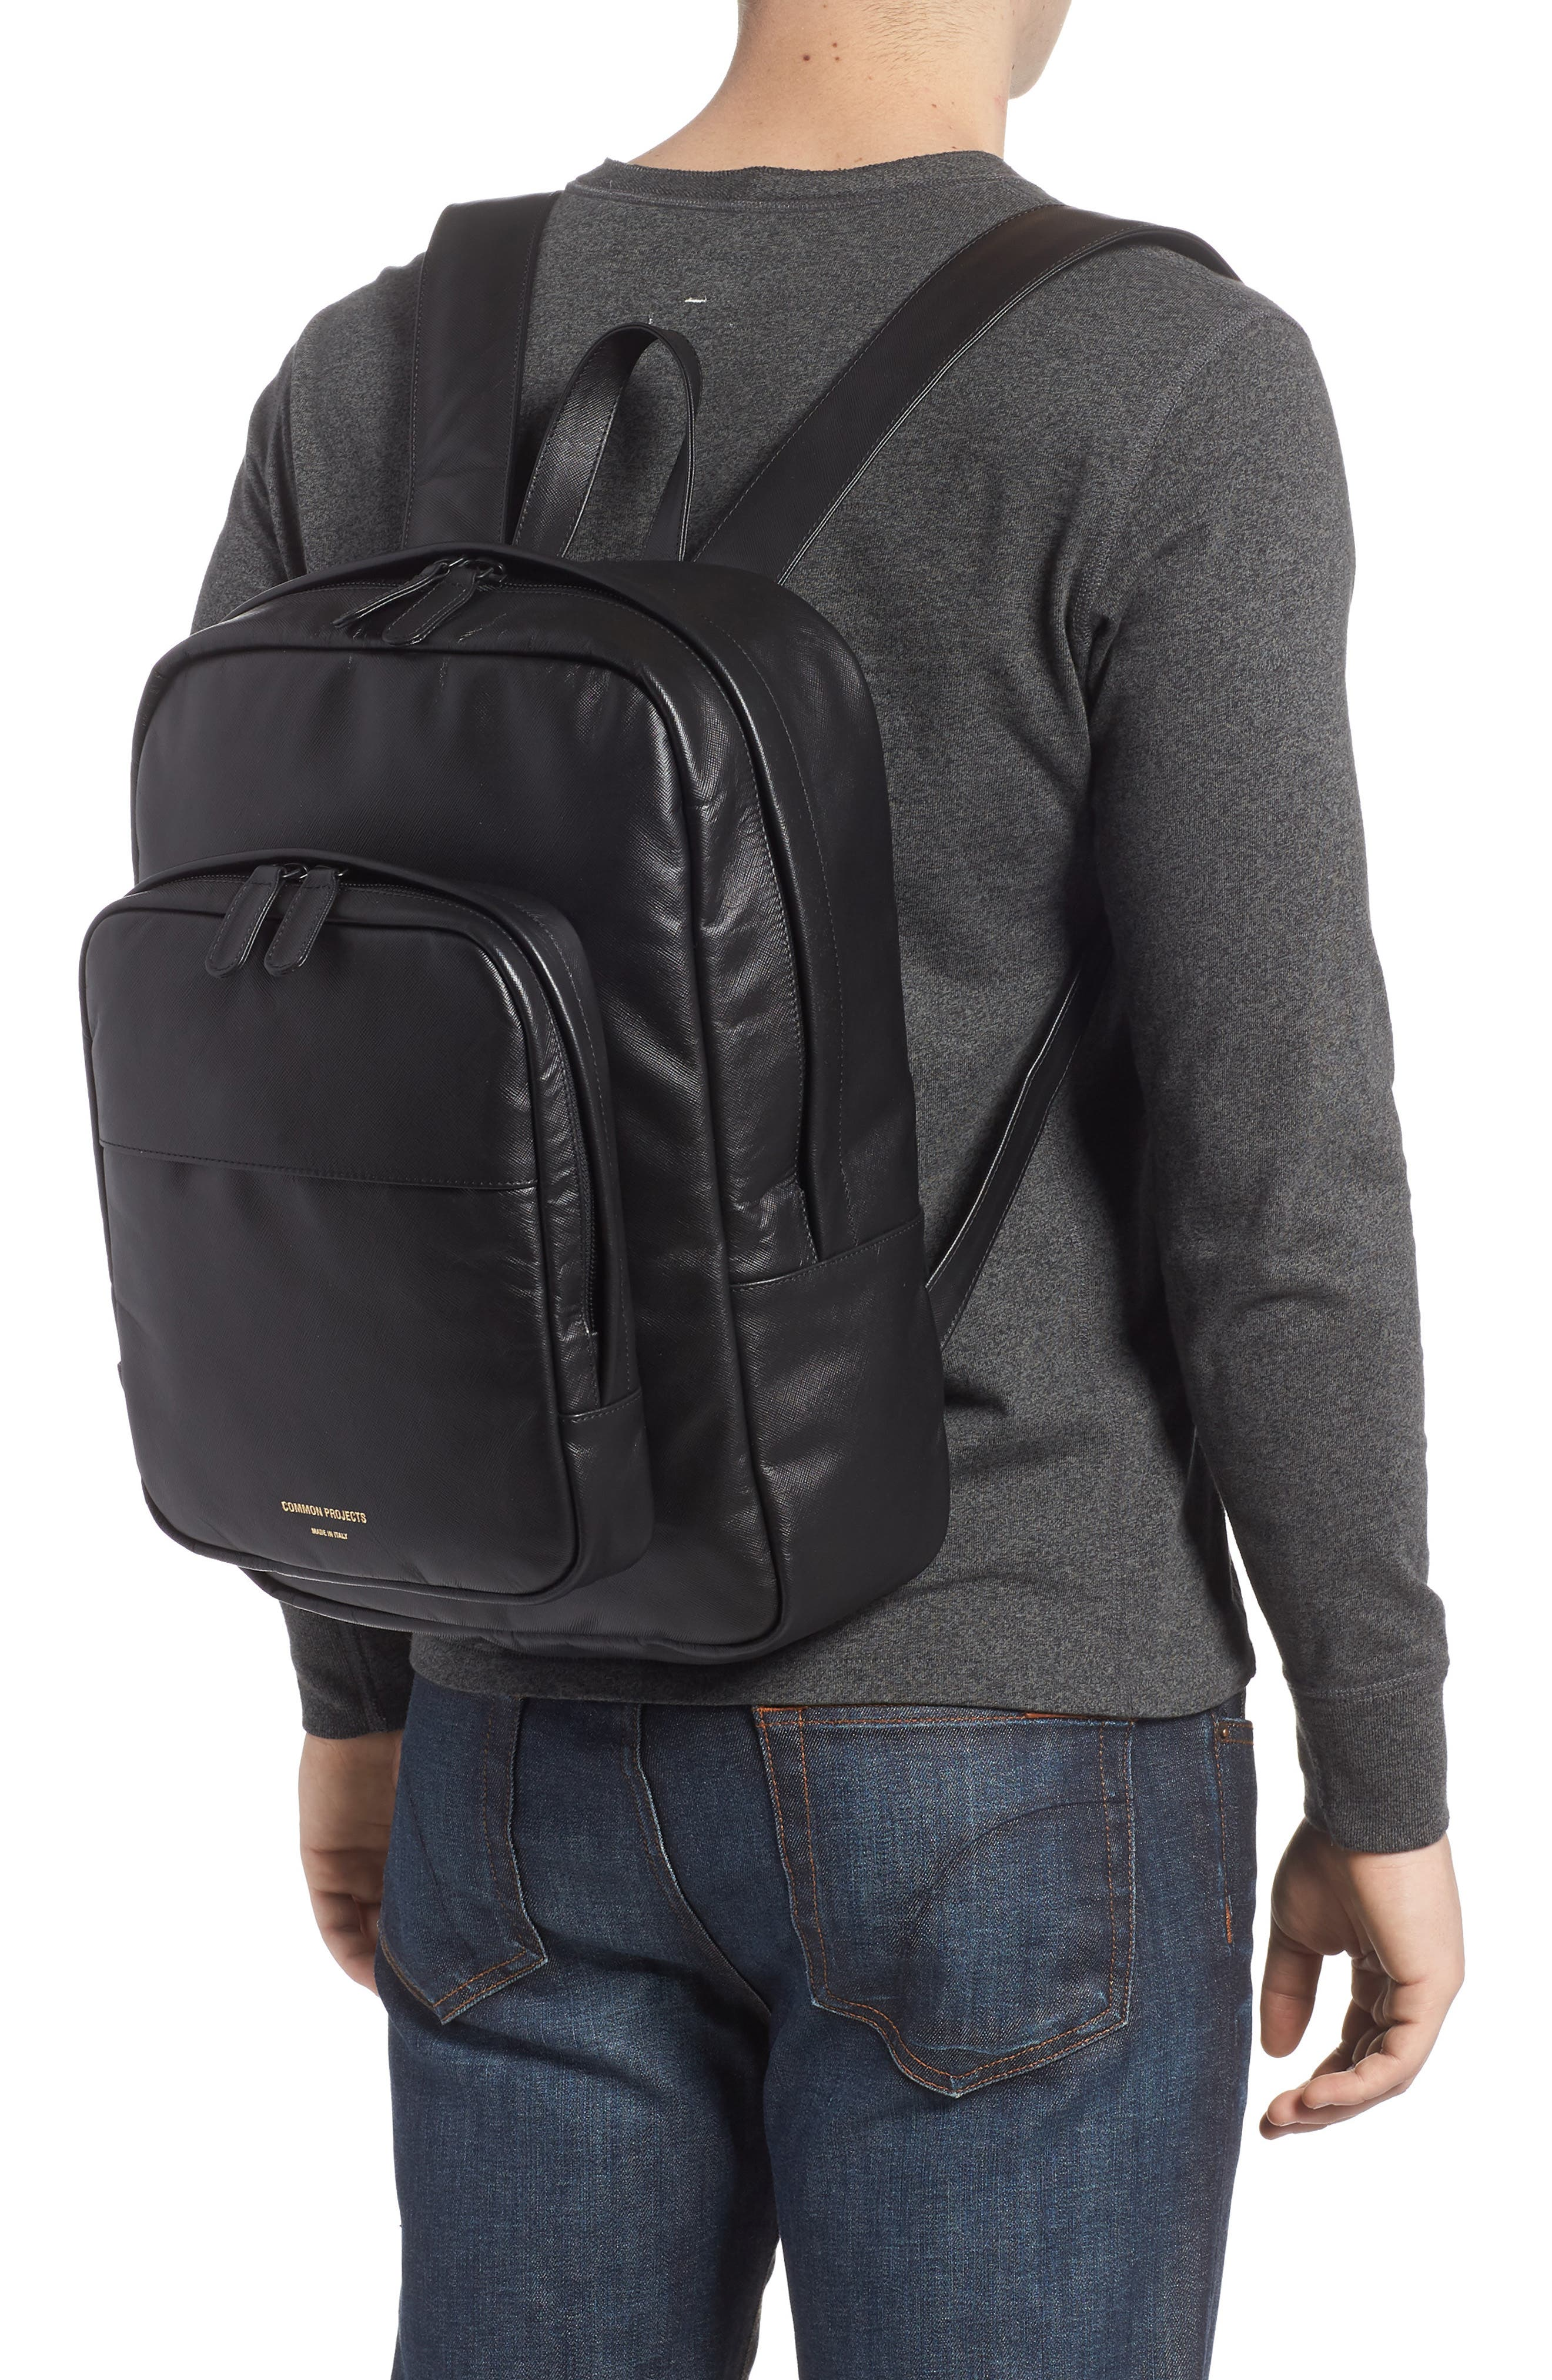 Saffiano Leather Backpack,                             Alternate thumbnail 2, color,                             001